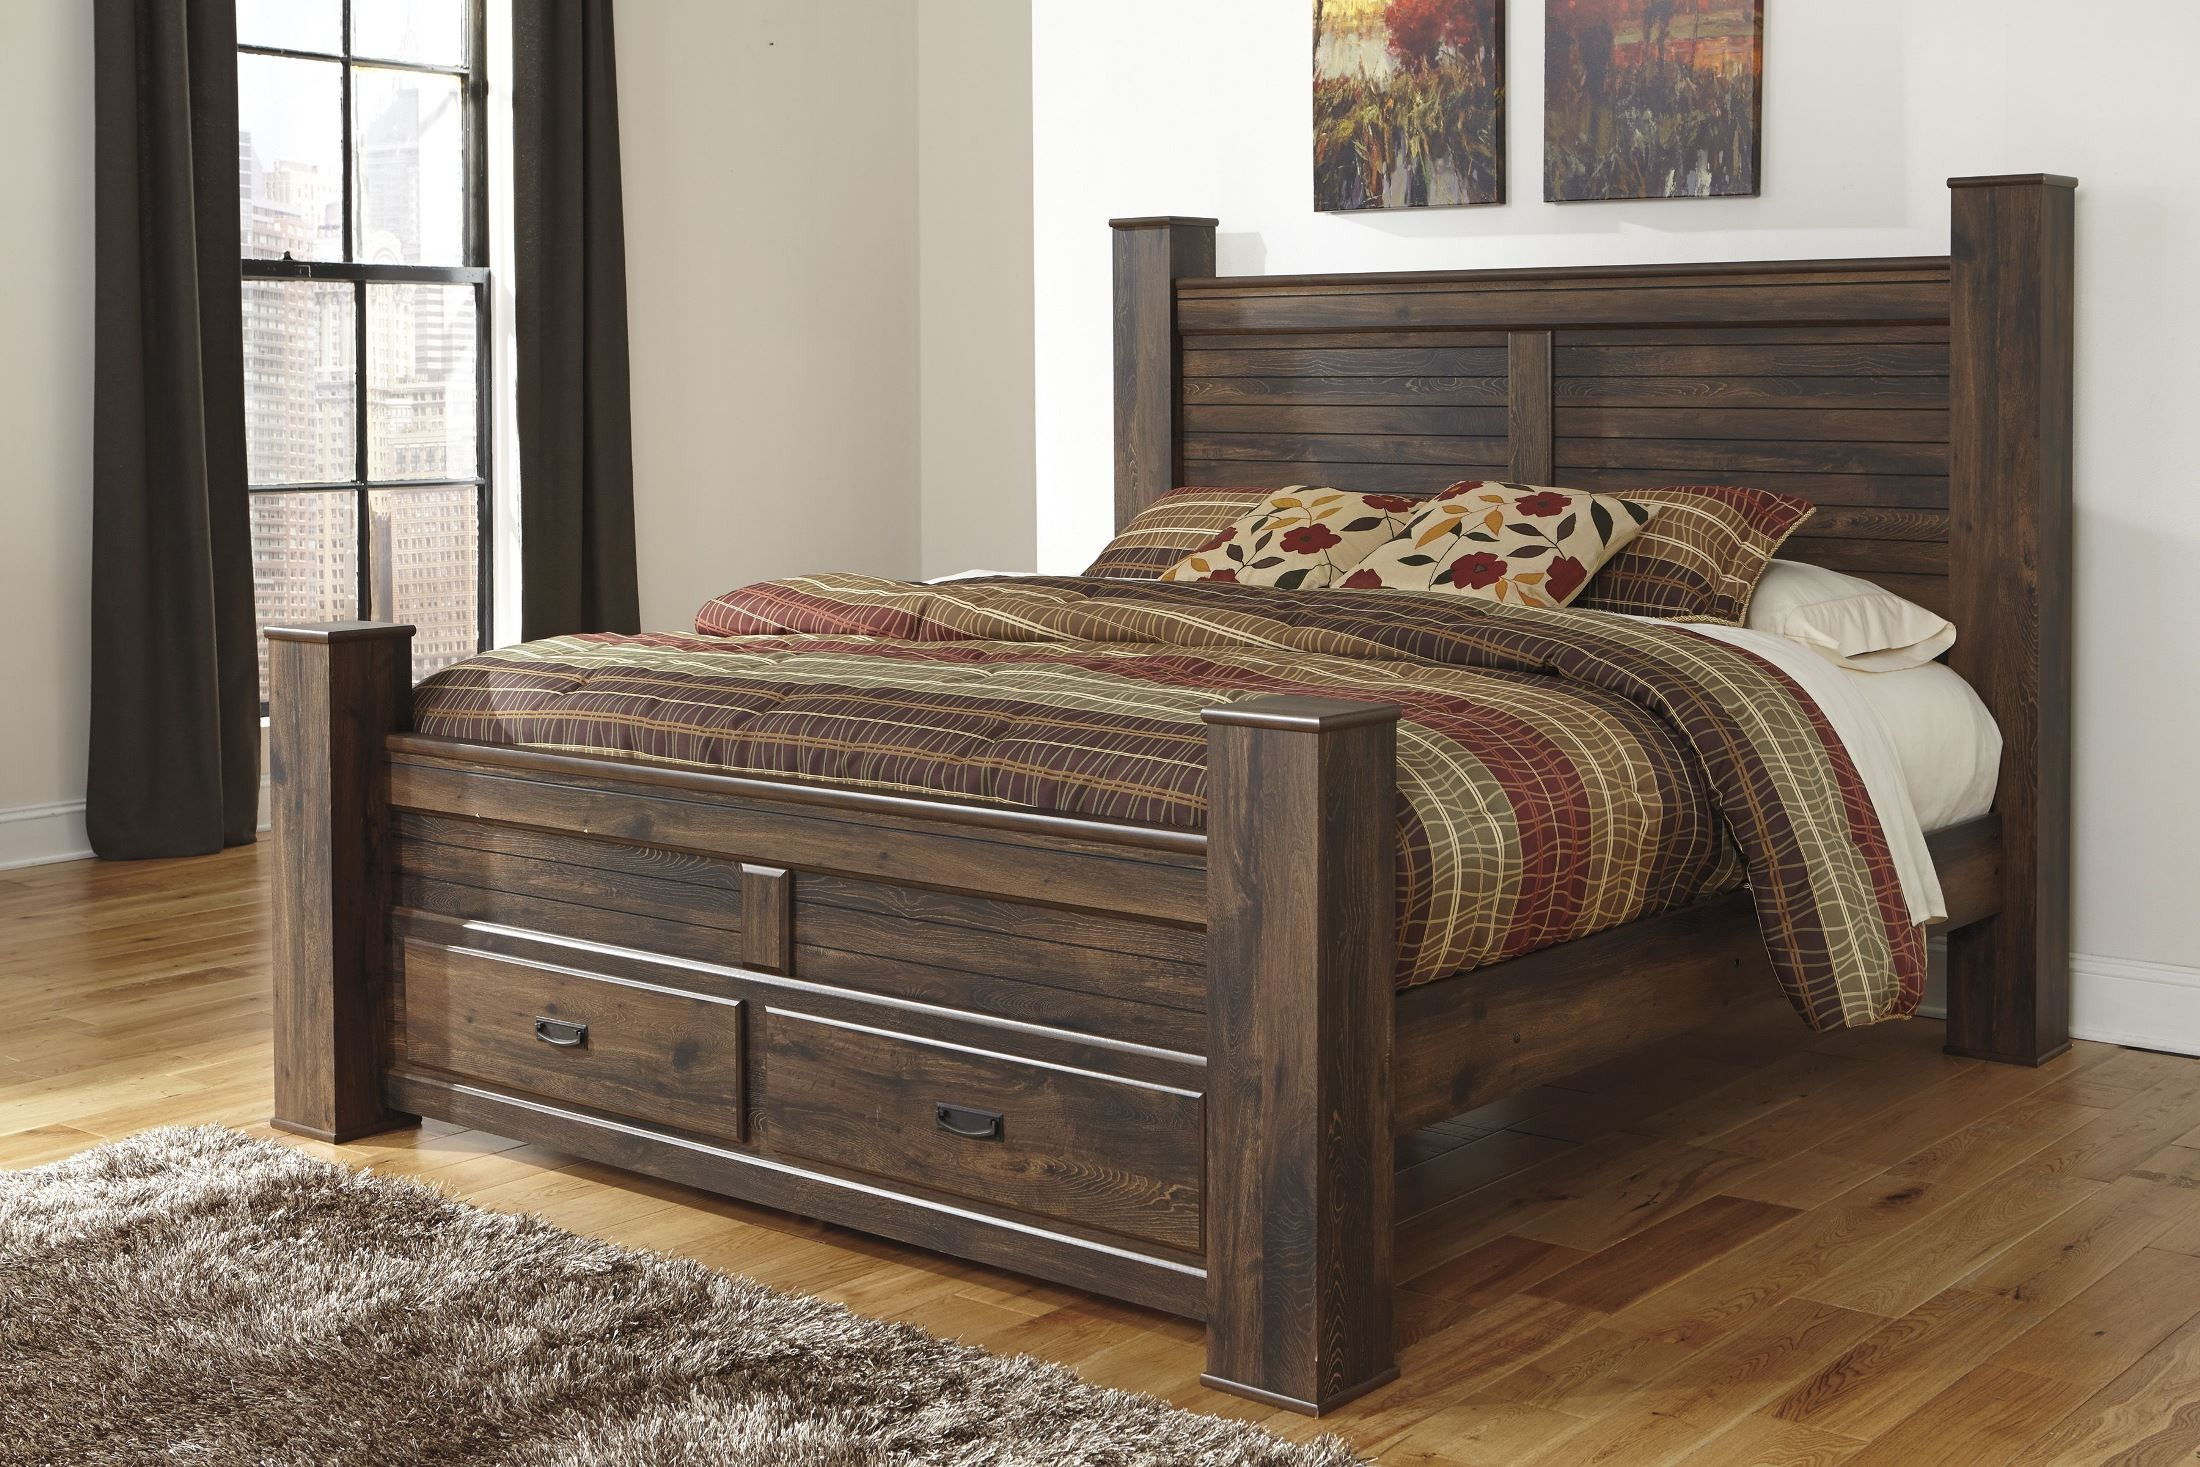 Quinden Poster Storage Bedroom Set from Ashley B246 61 64S 98